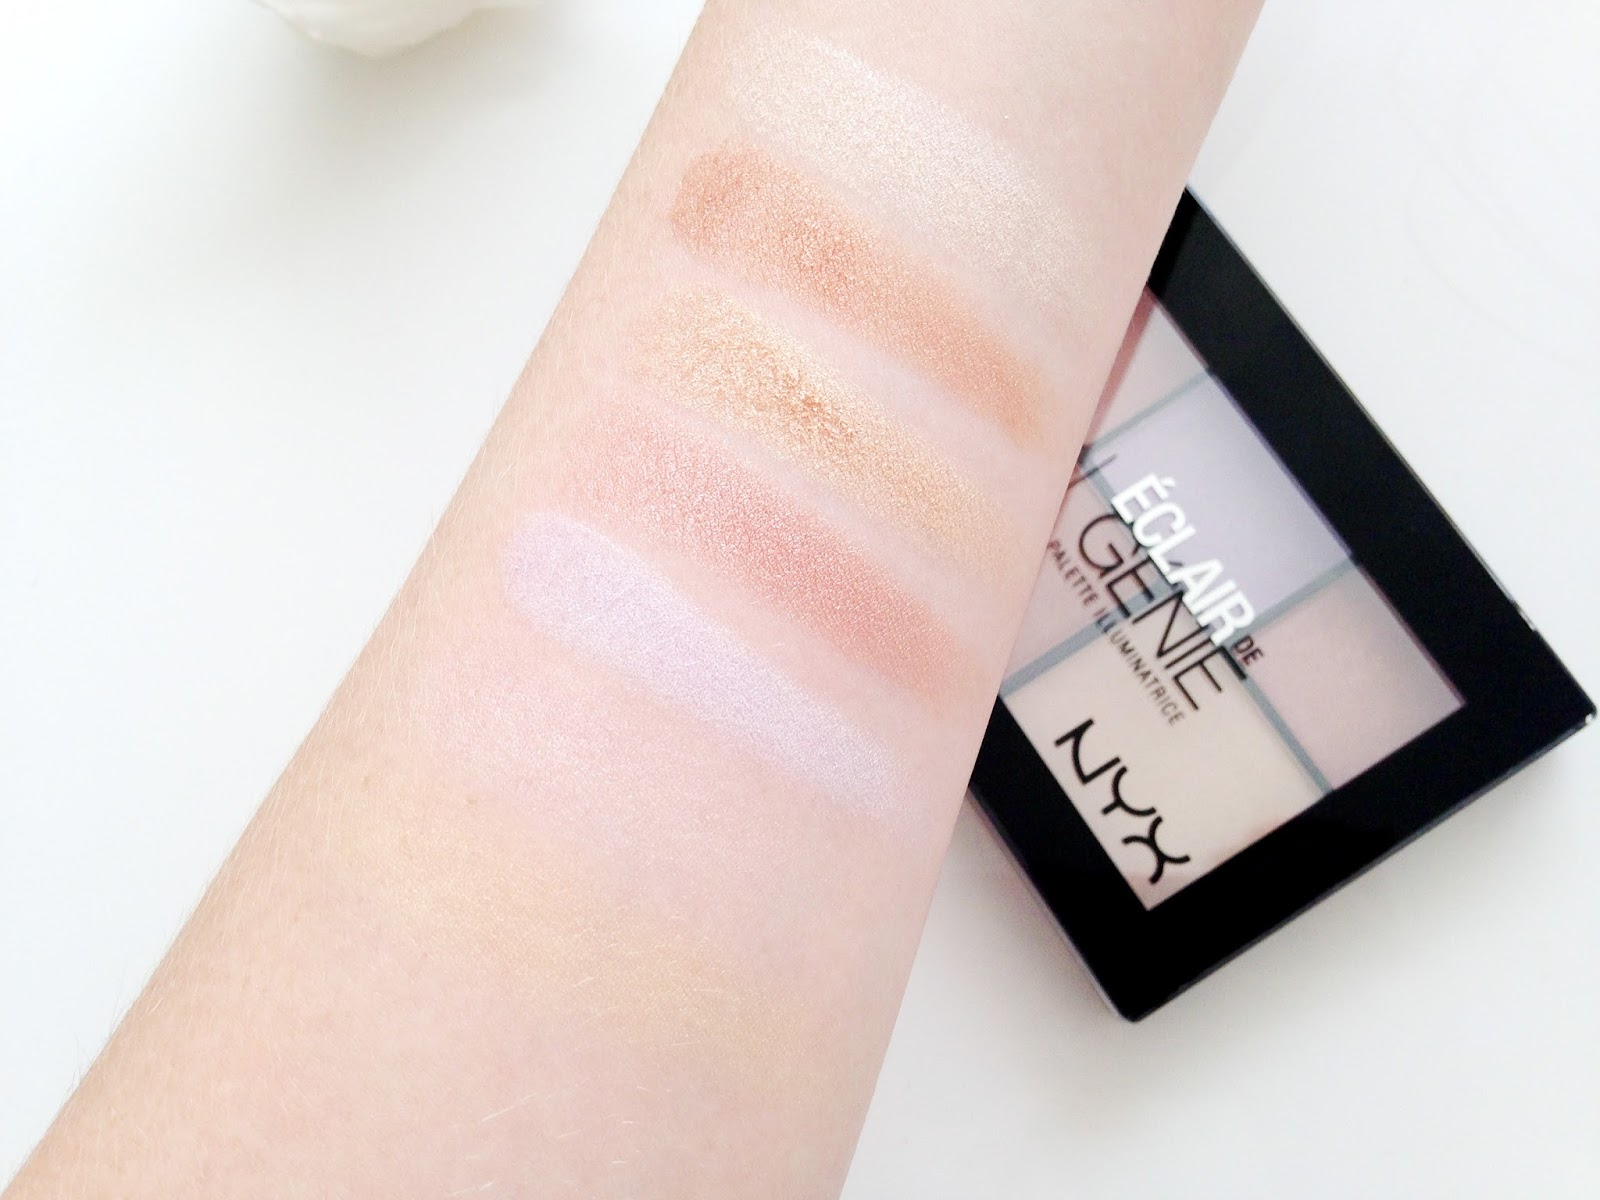 NYX Strobe of Genius Illuminating Palette Swatches